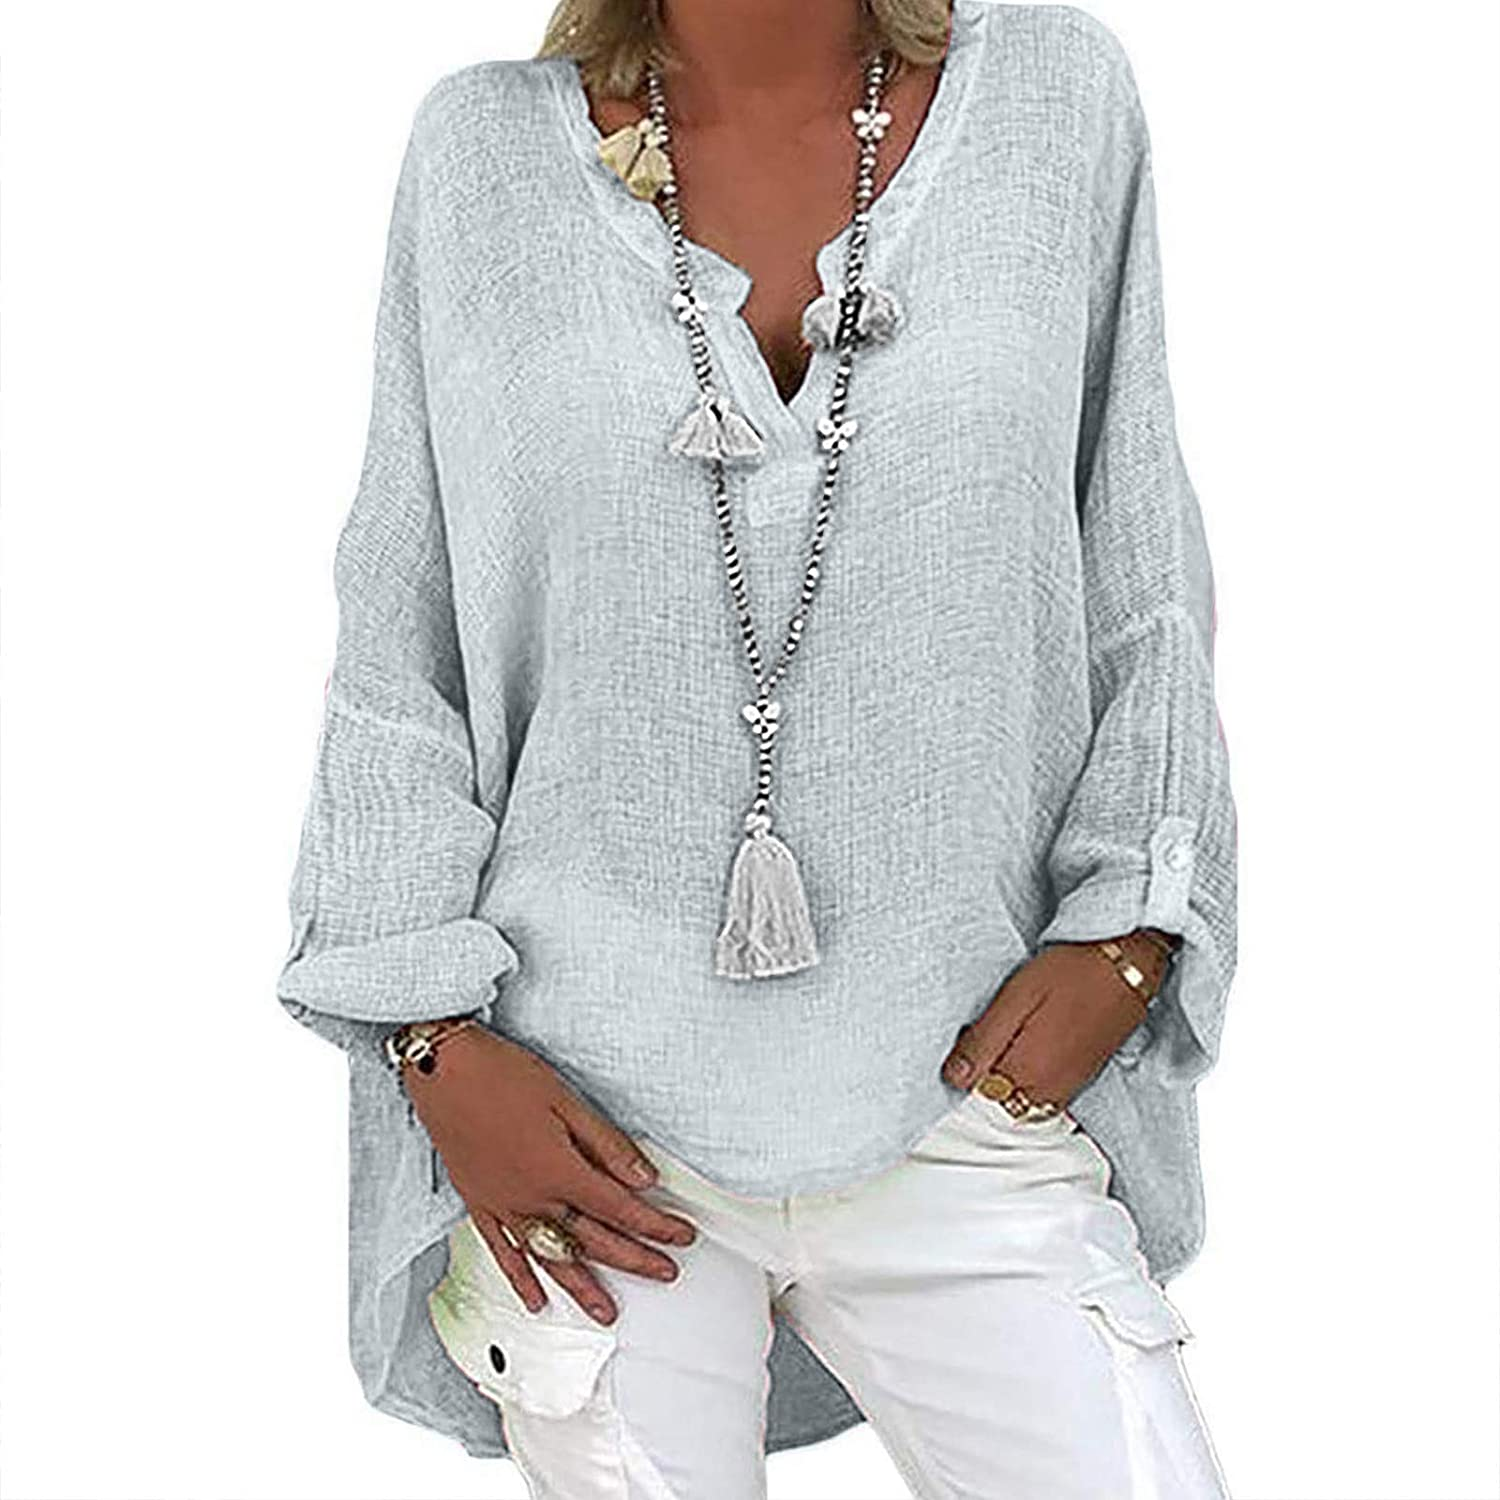 Womens Summer Tops, Plus Size Women Casual Long Sleeve Solid Loose V-Neck Shirts Tops Blouse